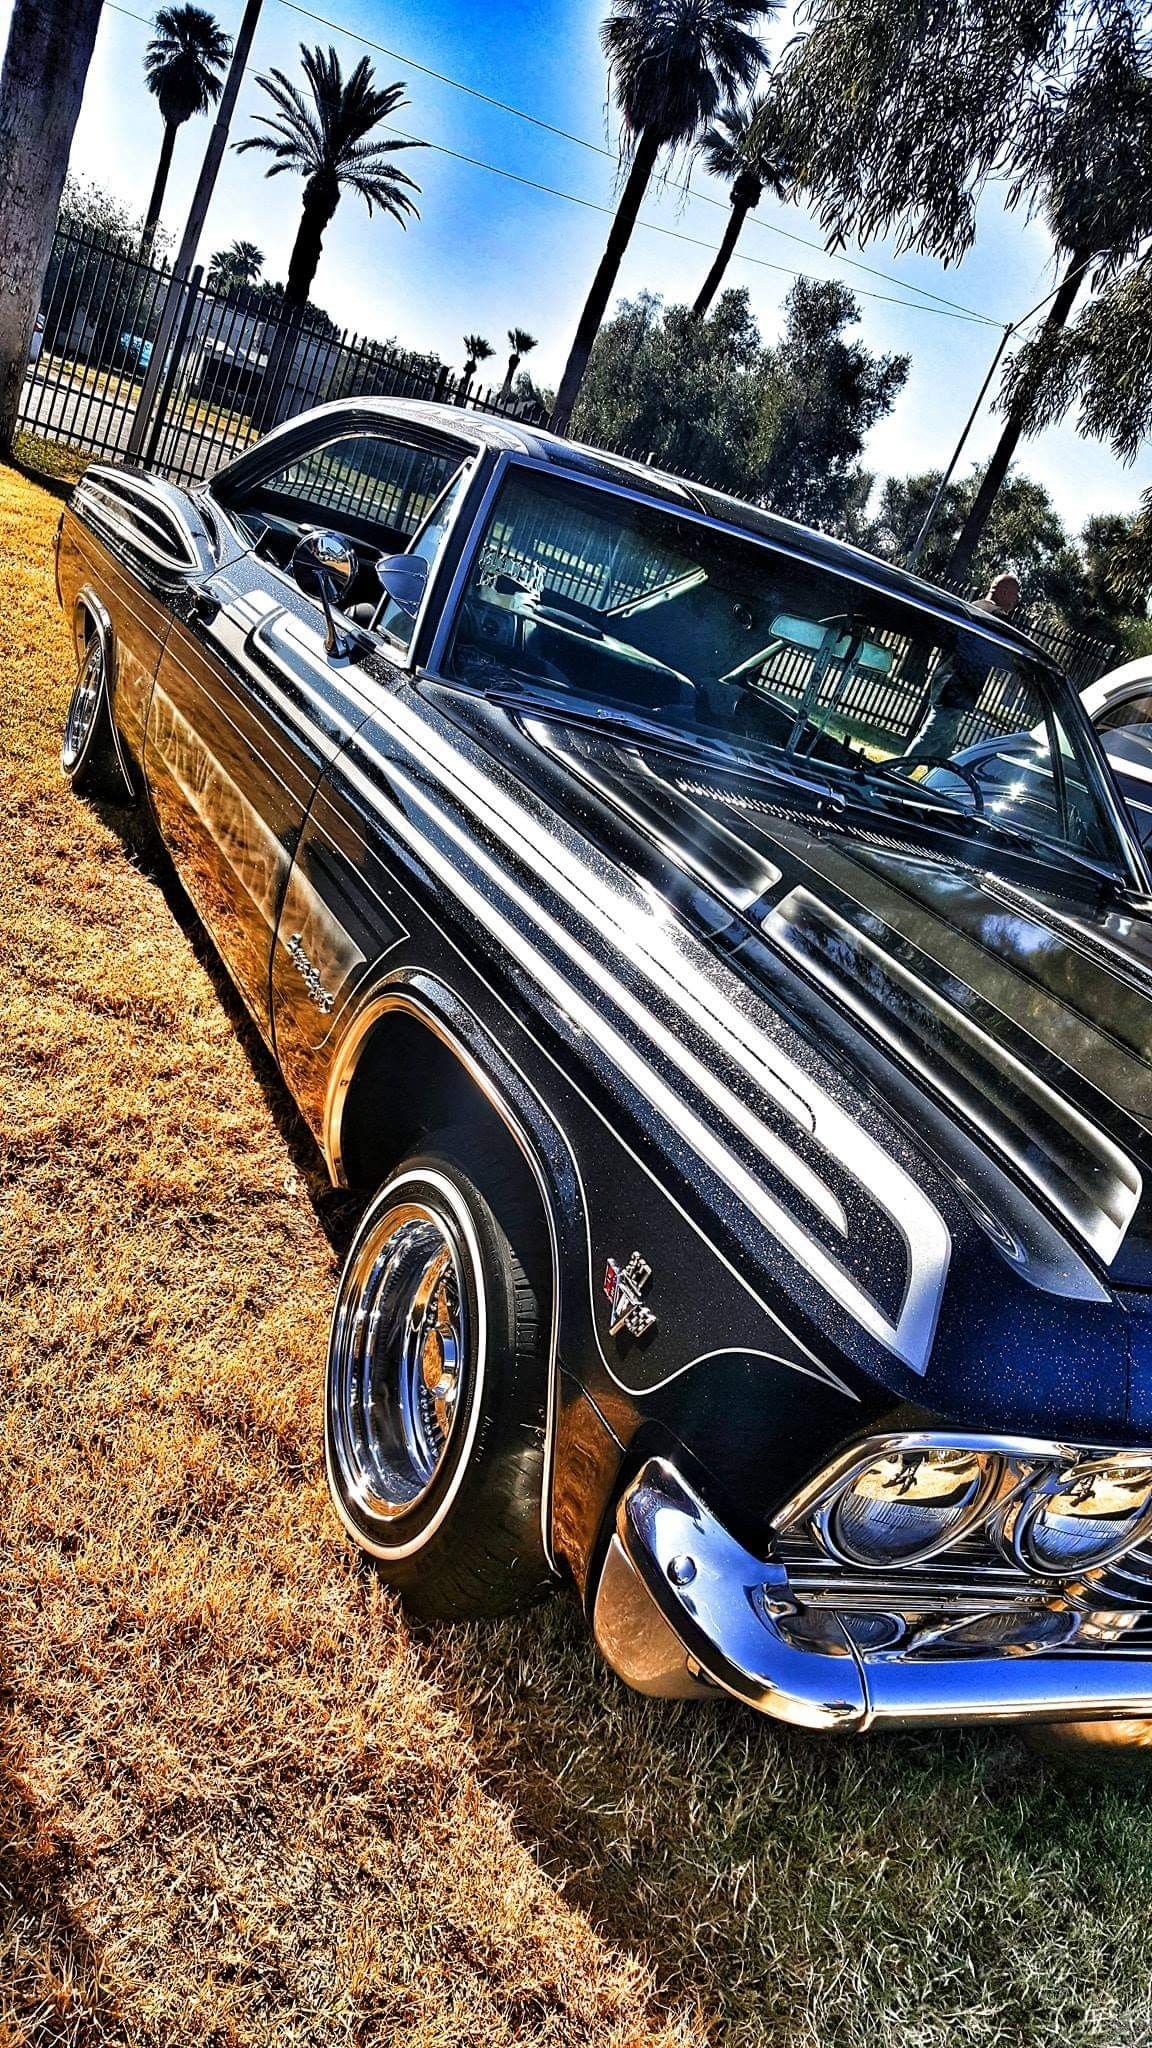 Pin By Heavenlee On Cars Old American Cars Lowrider Cars Lowriders